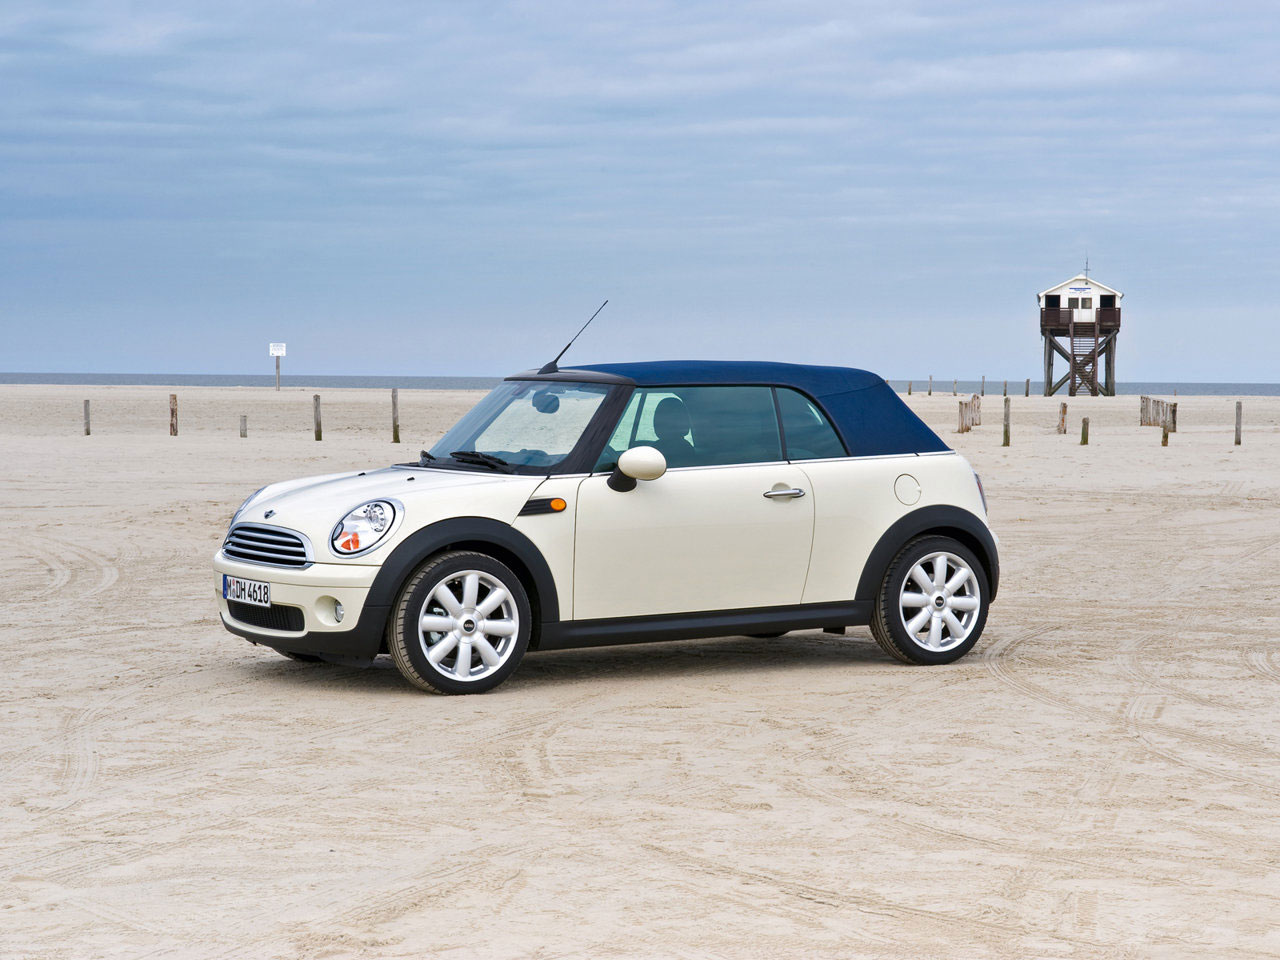 Gallery MINI Mini Cooper Convertible Mini Cooper Wallpaper 1280x960